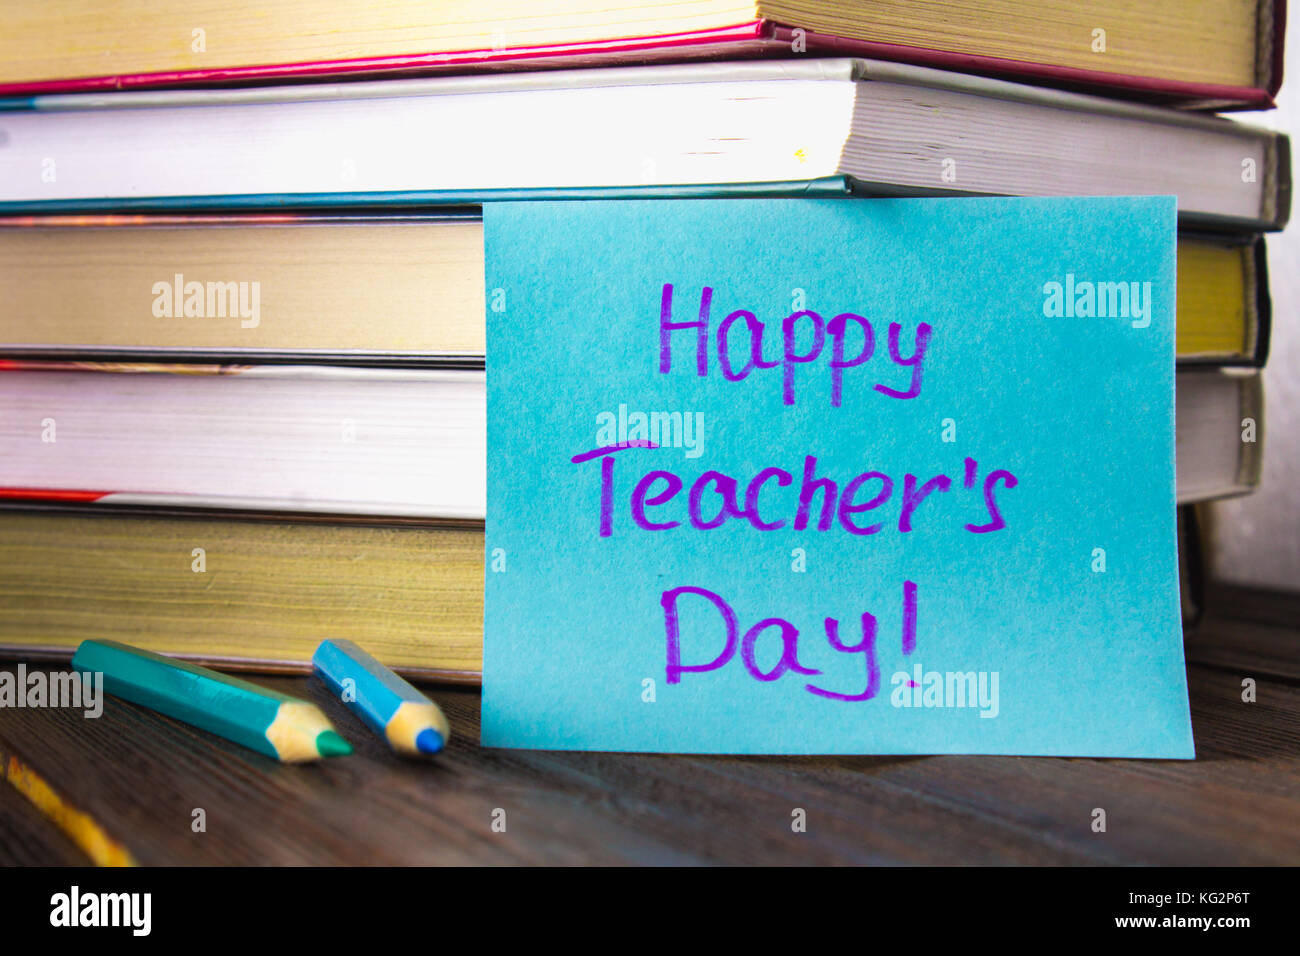 Objects On A Chalkboard Background Books Green Apple Plaque Happy Teachers Day Pencils And Pens In Glass Sprig With